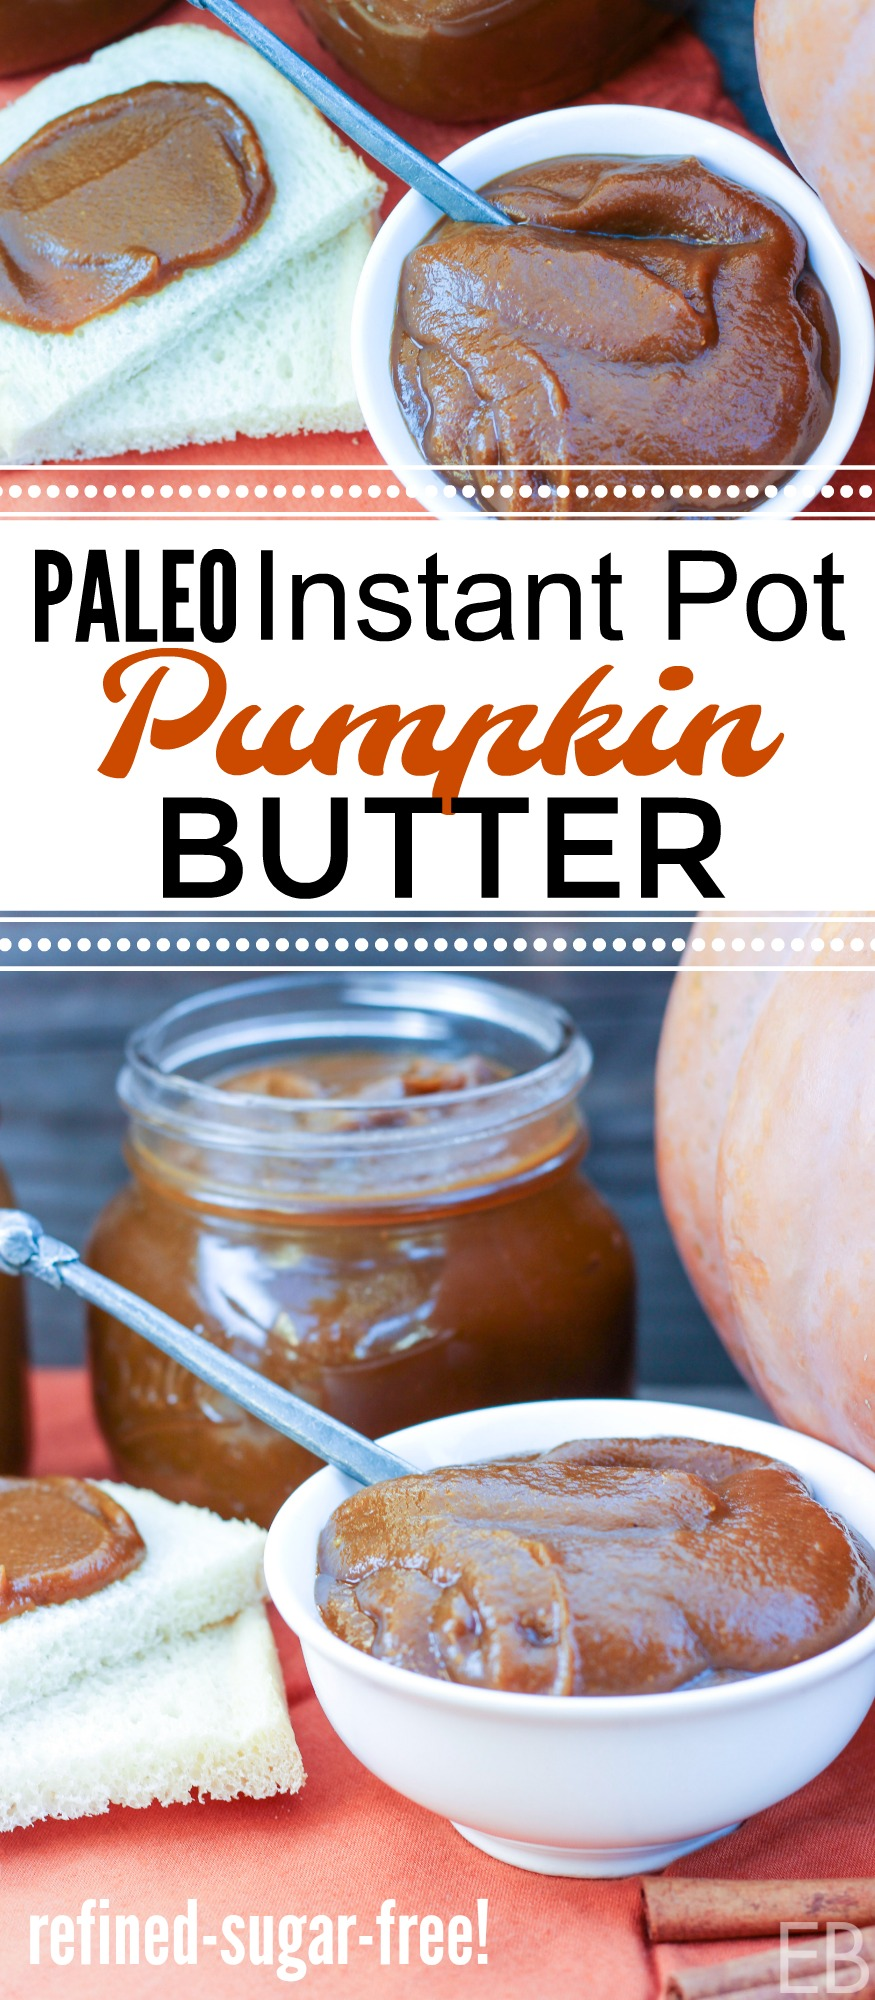 Instant Pot Paleo Pumpkin Butter in a bowl and spread on bread, with jars and a pumpkin in the background